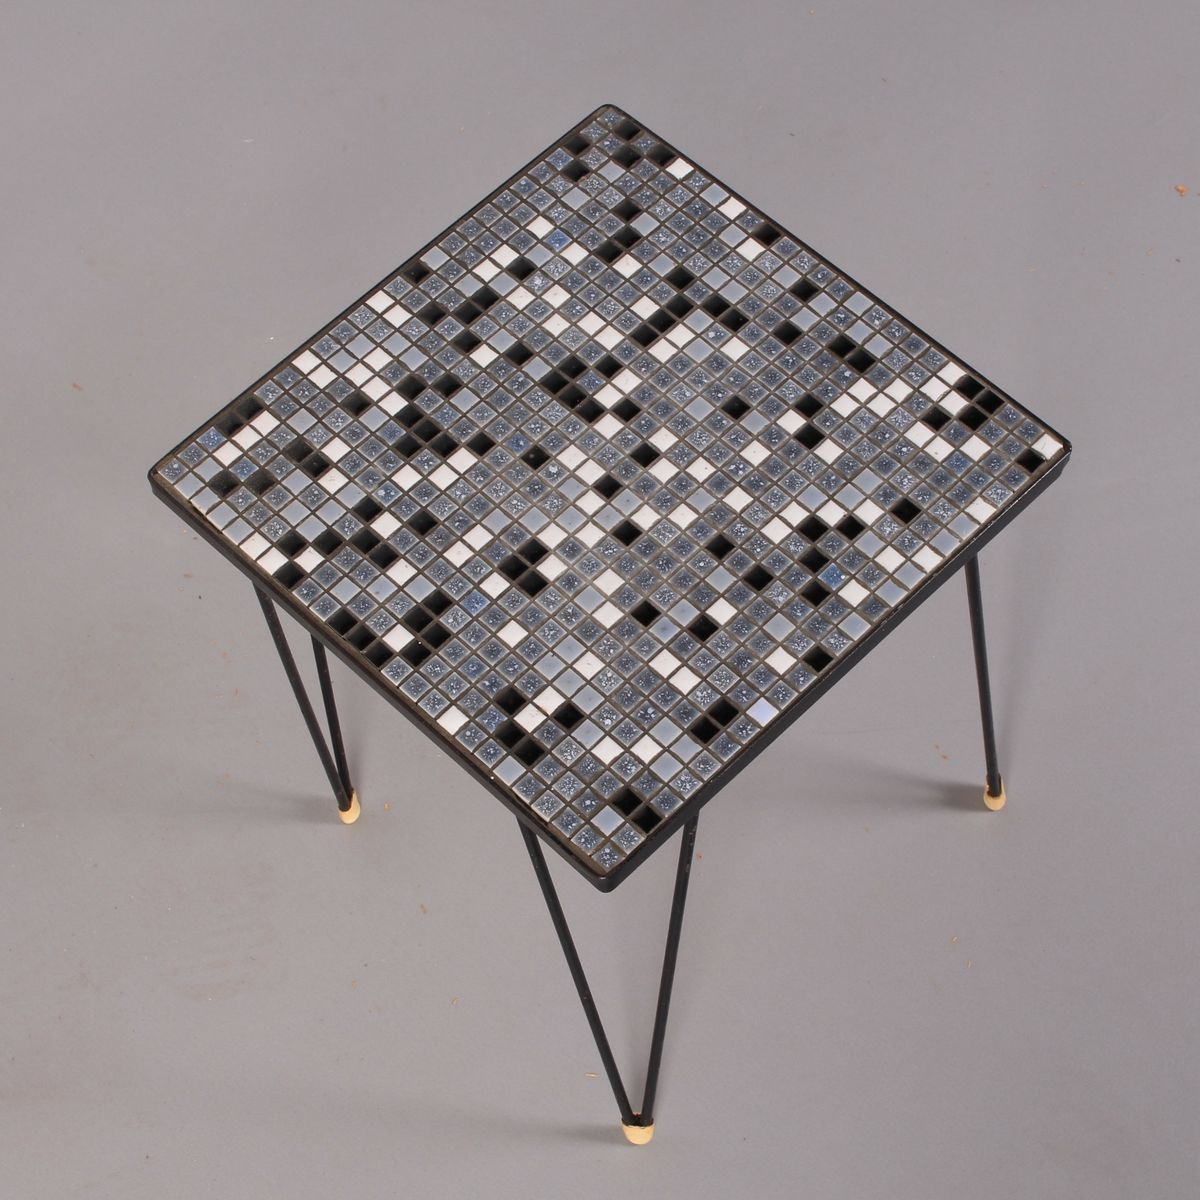 Vintage Mosaic Tiled Side Table With Hairpin Legs 1970s 5 219 00 Per Piece